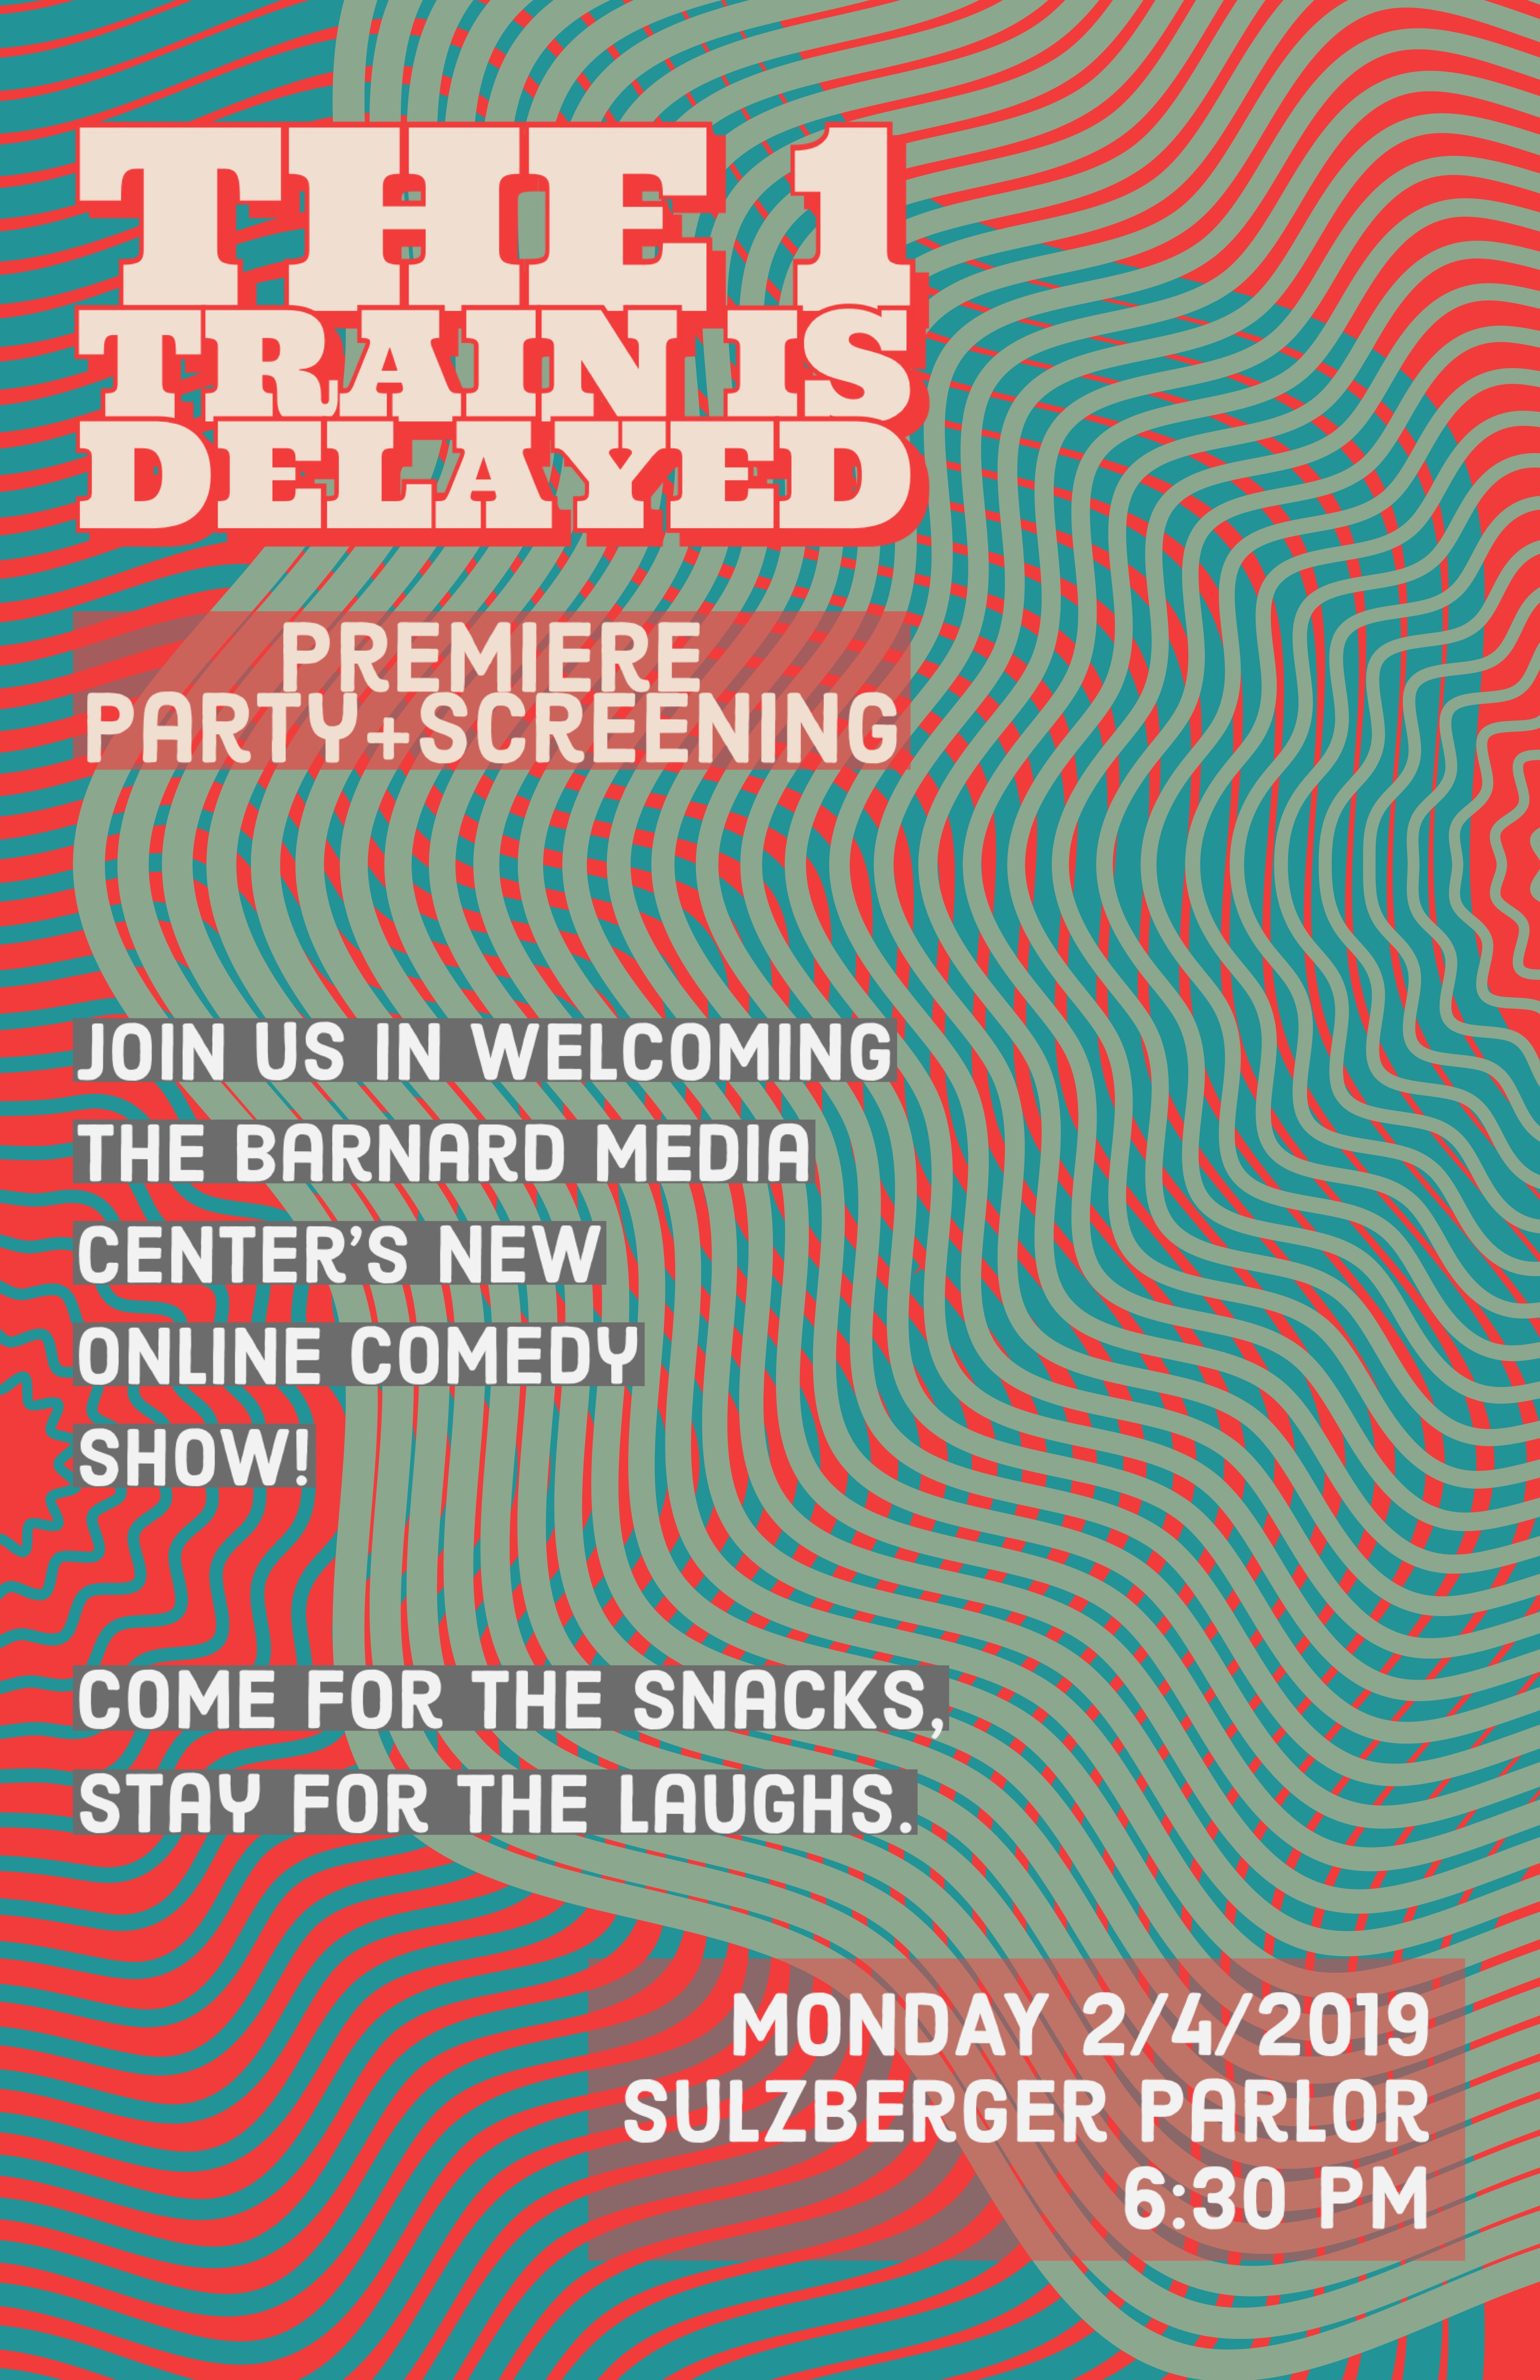 The 1 Train is Delayed: Premiere Party + Screening. Join us in welcoming the Barnard Media Center's new online comedy show! Come for the snacks, stay for the laughs.